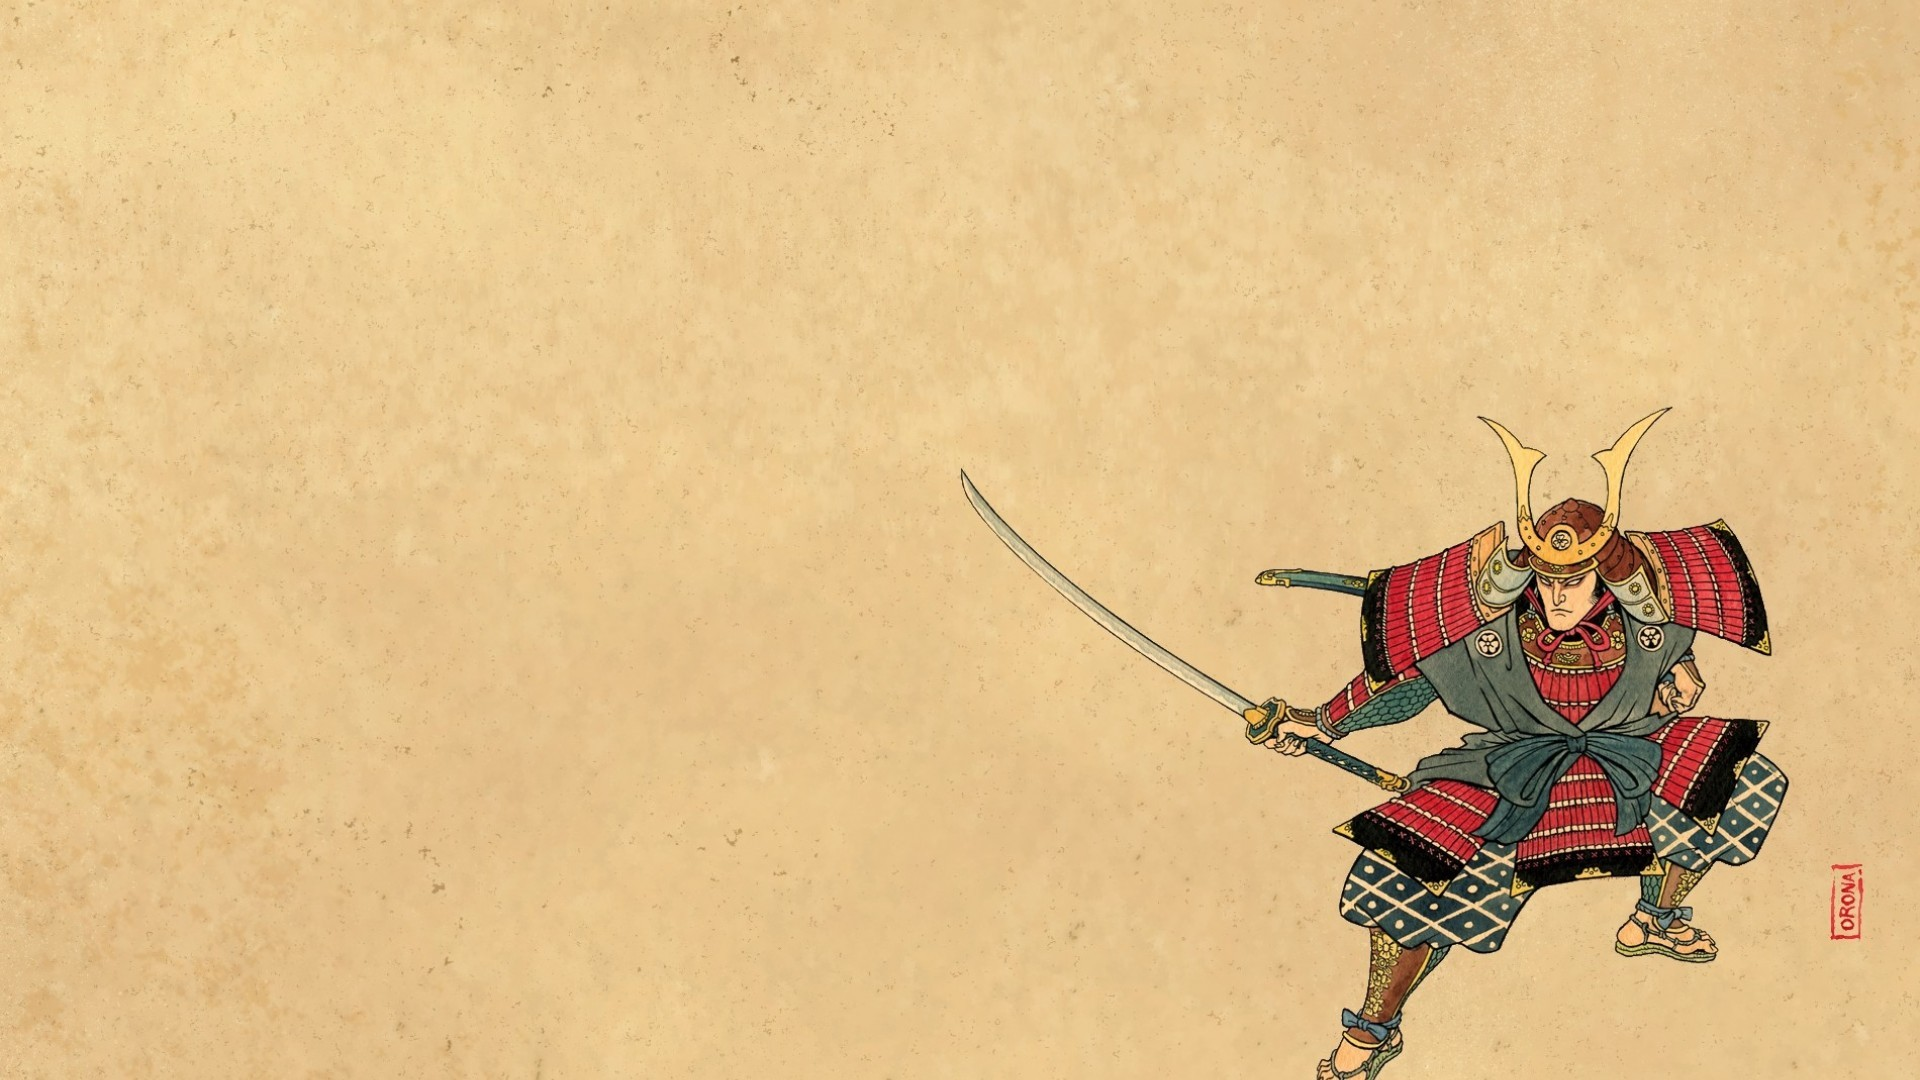 Res: 1920x1080, Samurai Wallpapers  px – Wallpapers and Pictures for PC & Mac,  Laptop, Tablet, Mobile Phone